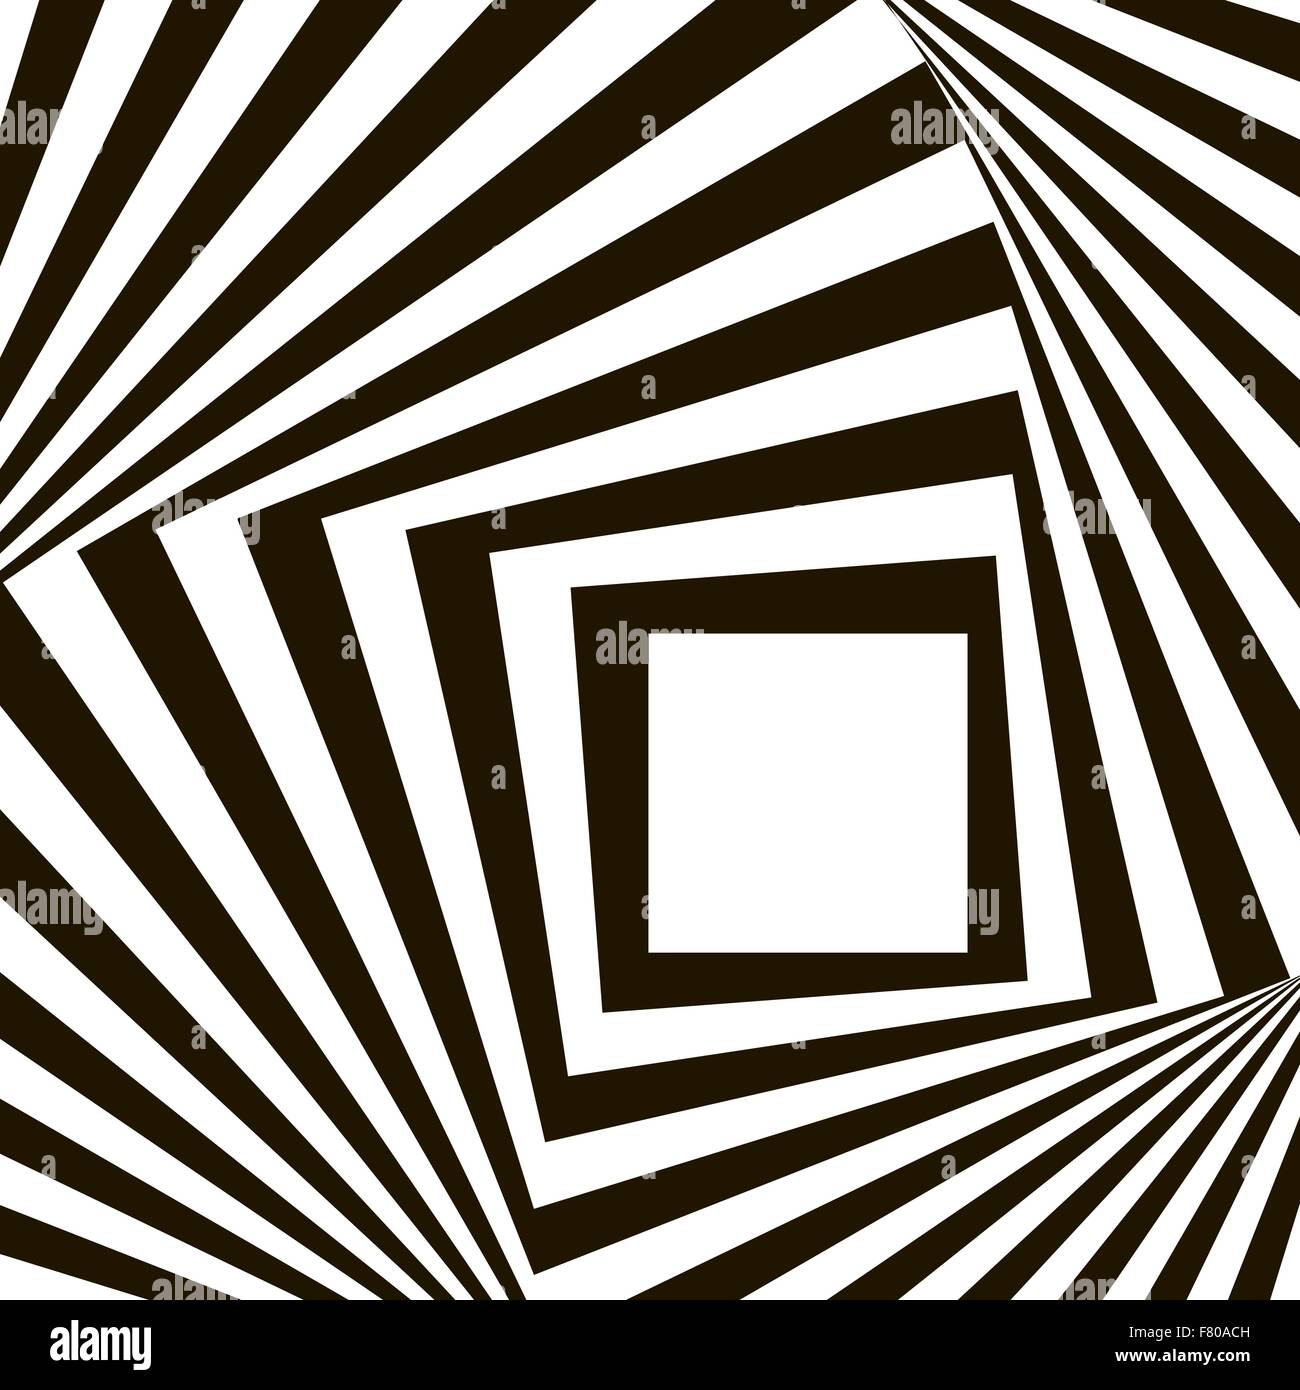 Geometric Black and White Vector Pattern - Stock Image